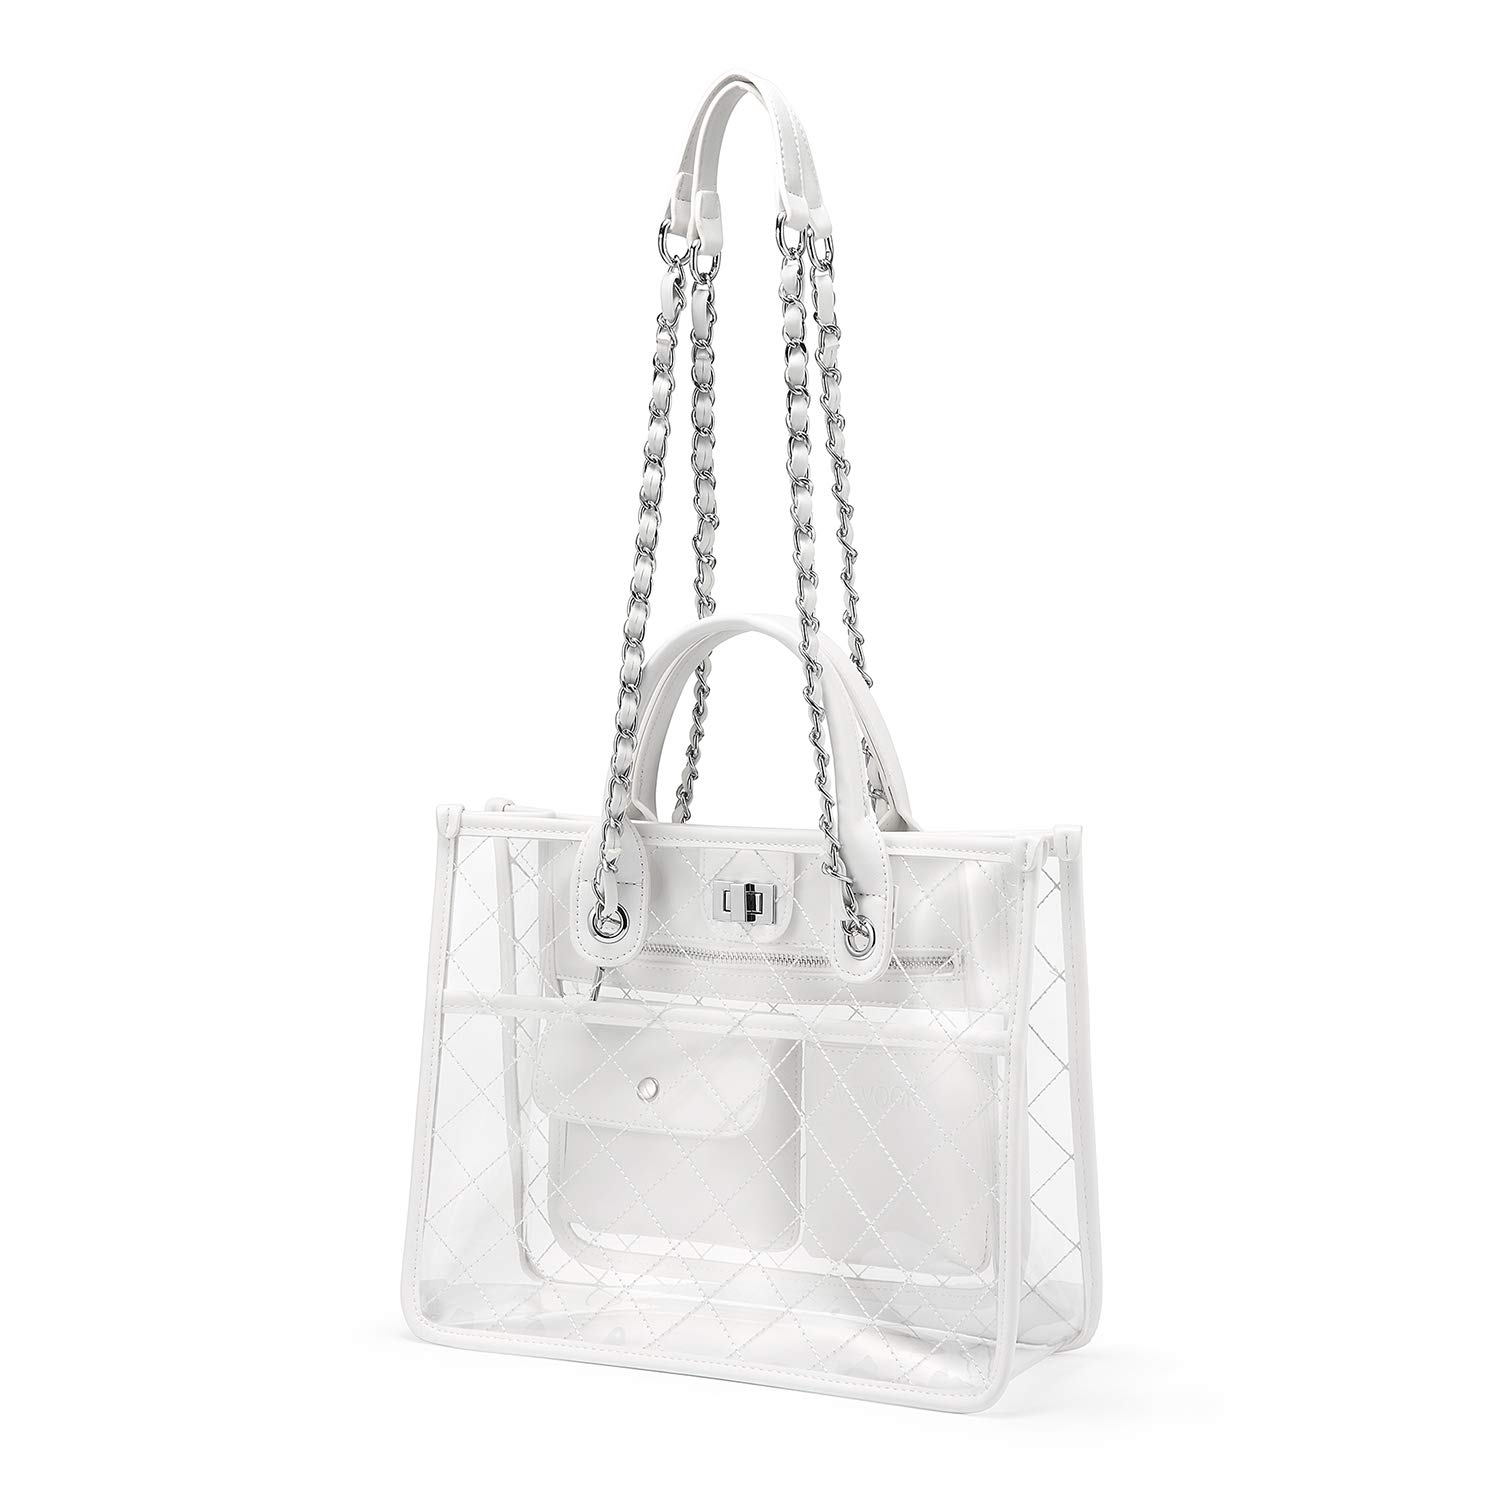 Amazon.com  Clear Handbag Purses and Handbags Women s Designer Quilted Tote  Shoulder Bag Medium Waterproof Twist Lock w Chain Strap Stylish White  Shoes 473bfed189e4a